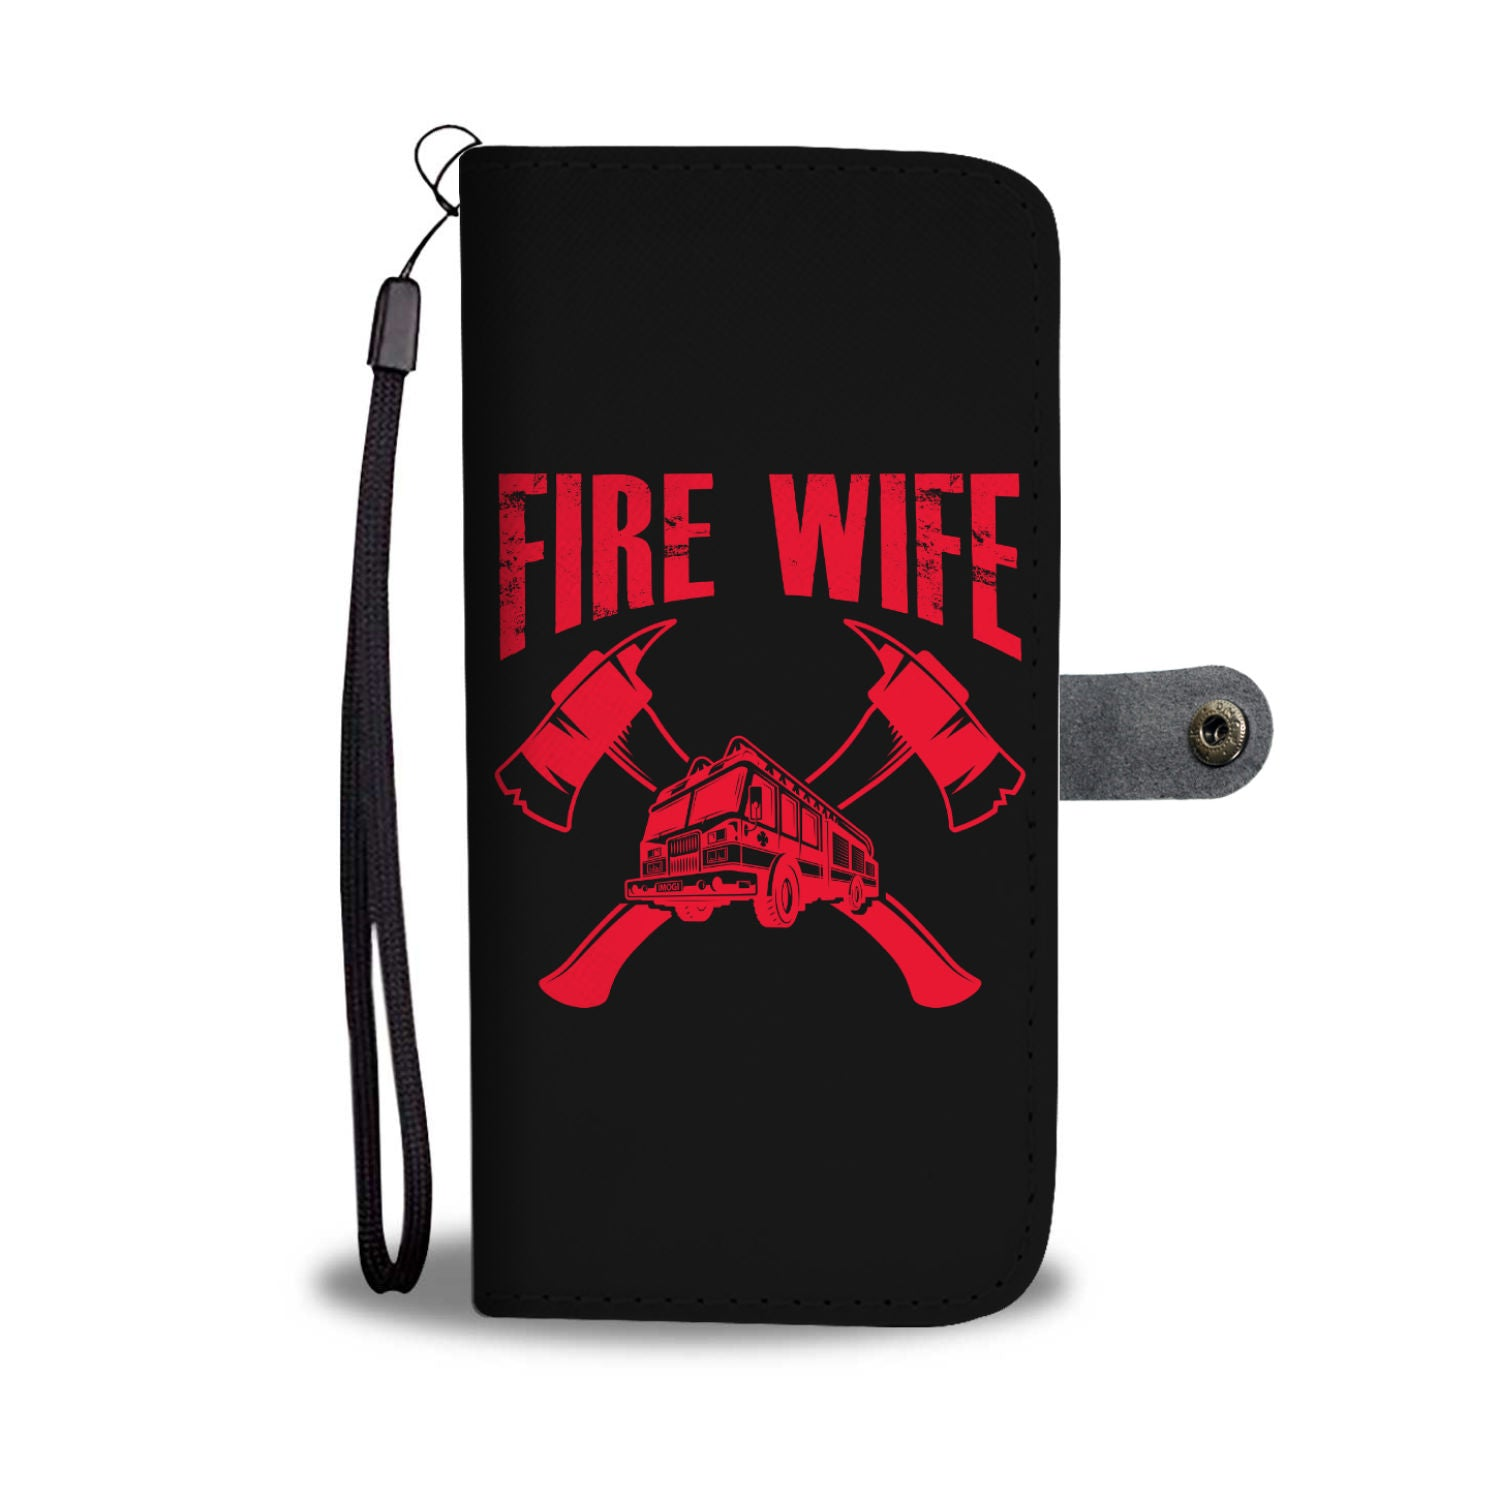 Fire Wife Wallet Phone Case - firefighter bestseller